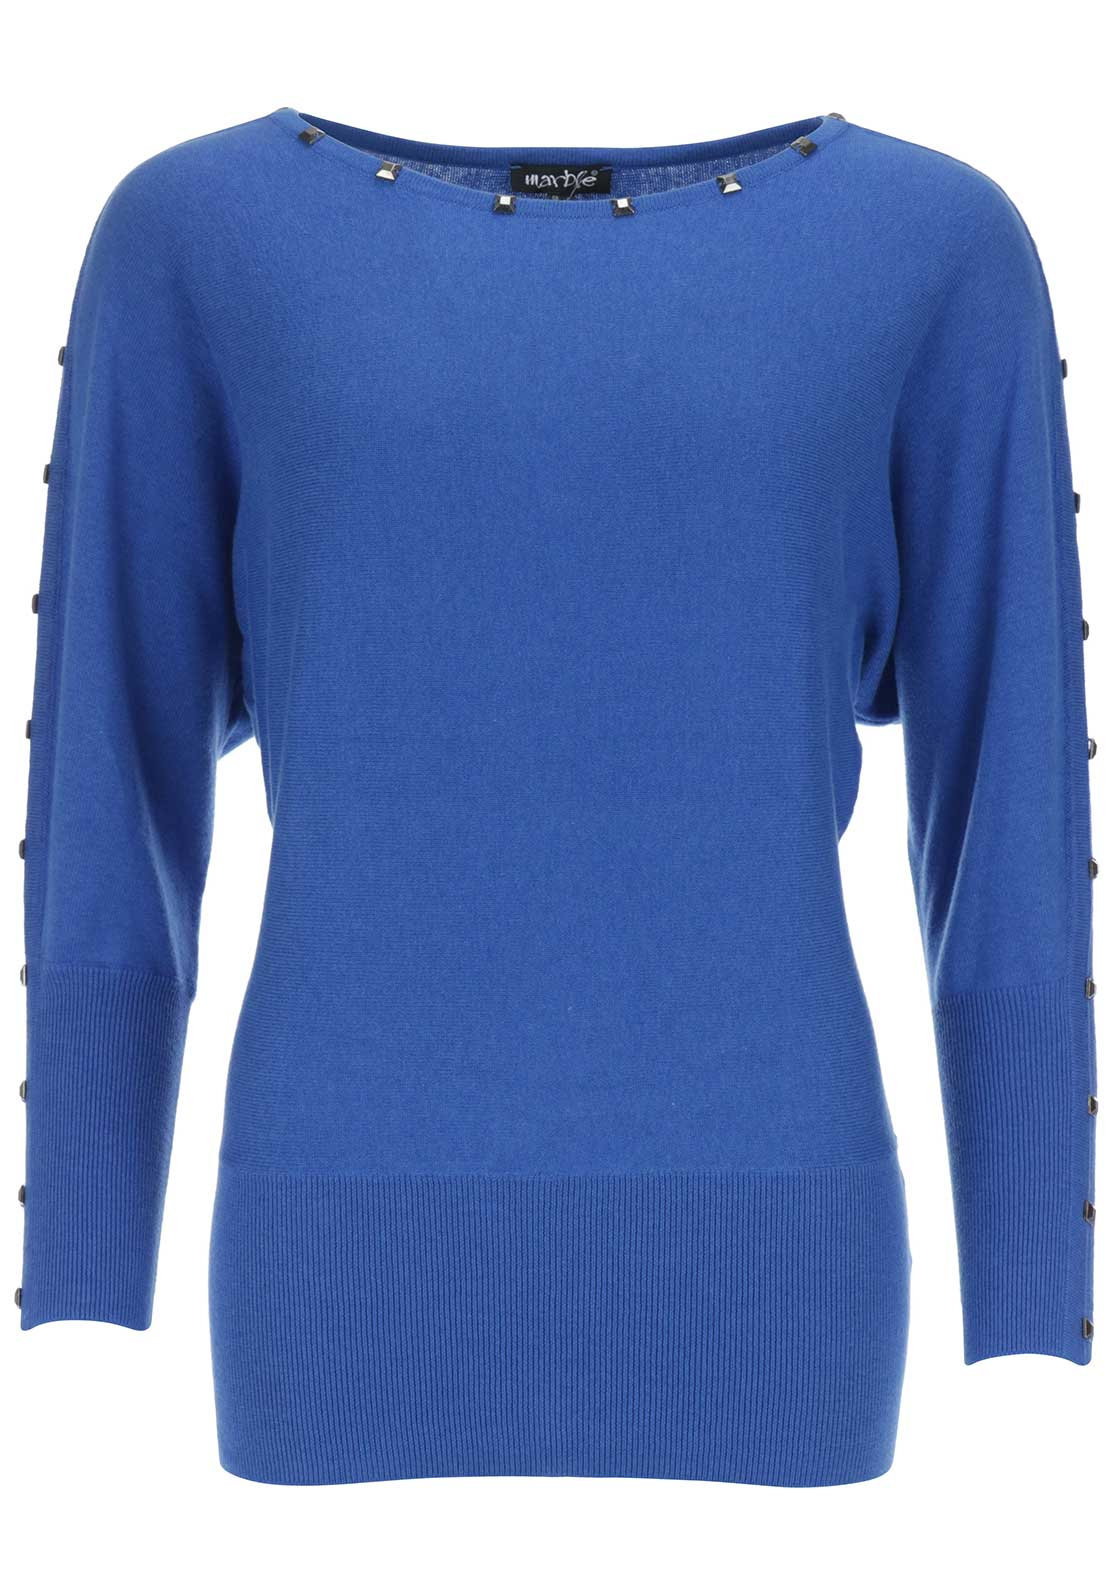 Marble Studded Cotton Fine Knit Sweater Jumper, Blue